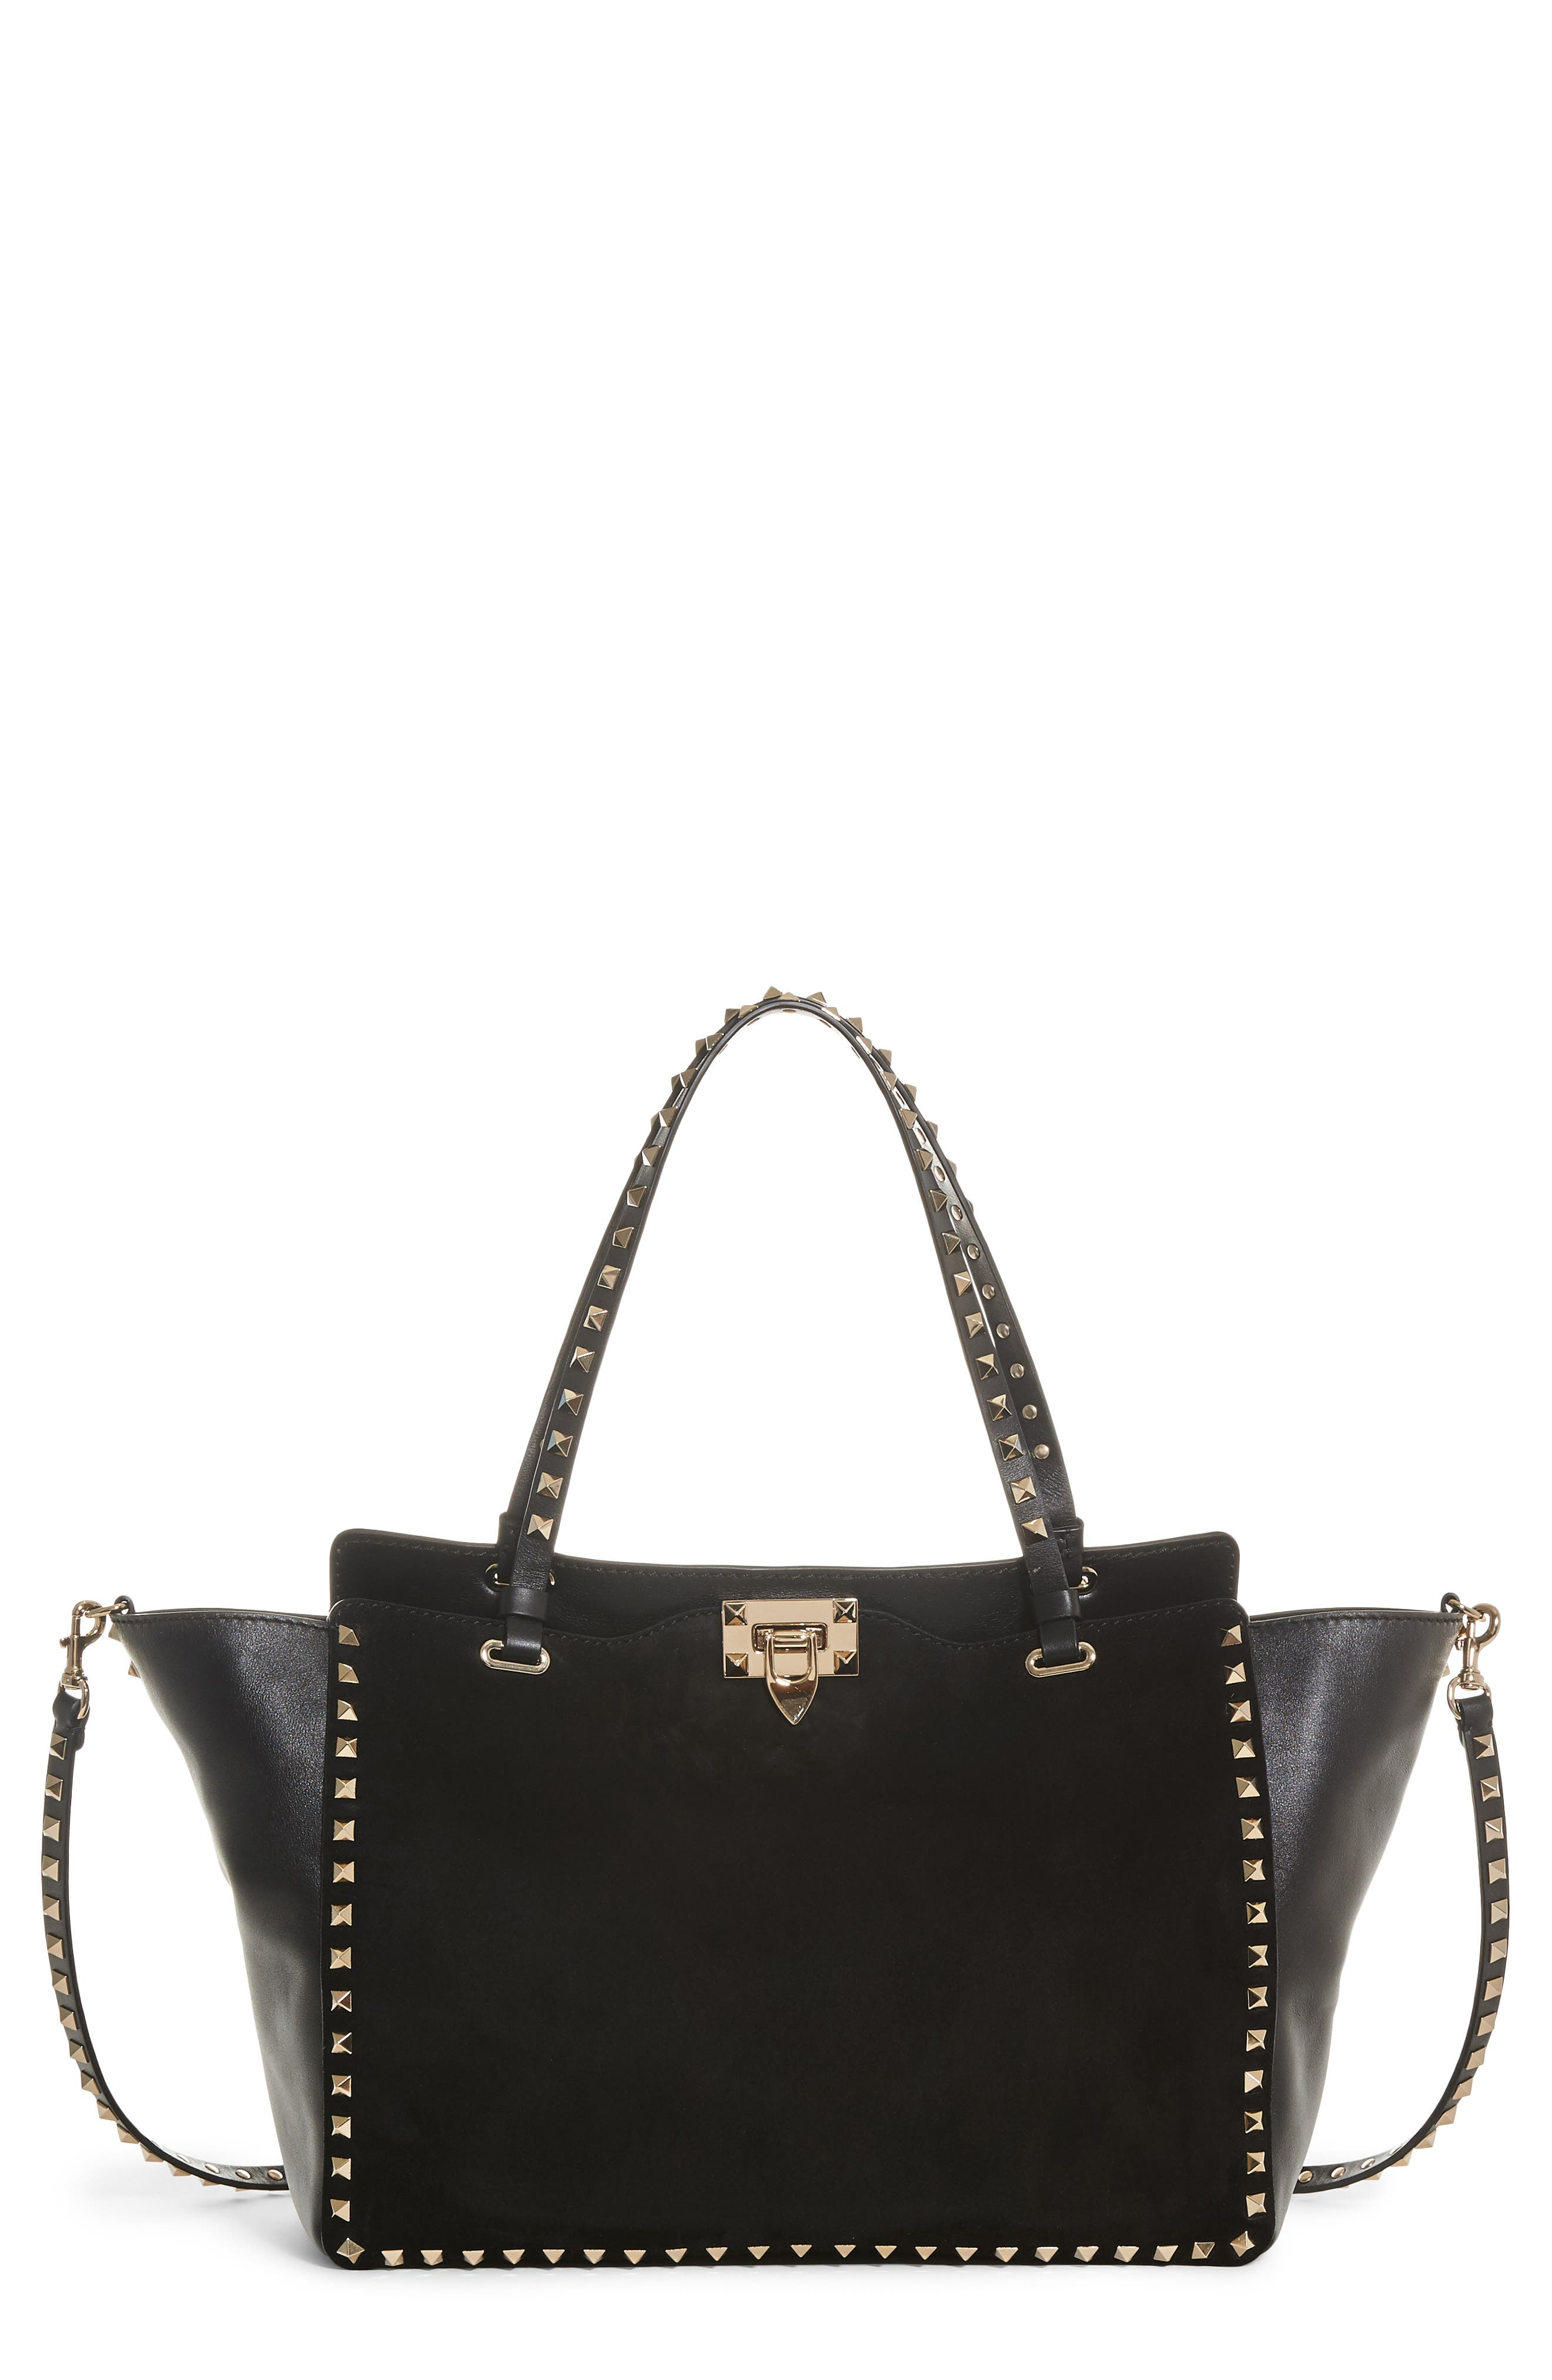 Medium Rockstud Suede & Leather Tote,                             Main thumbnail 1, color,                             001